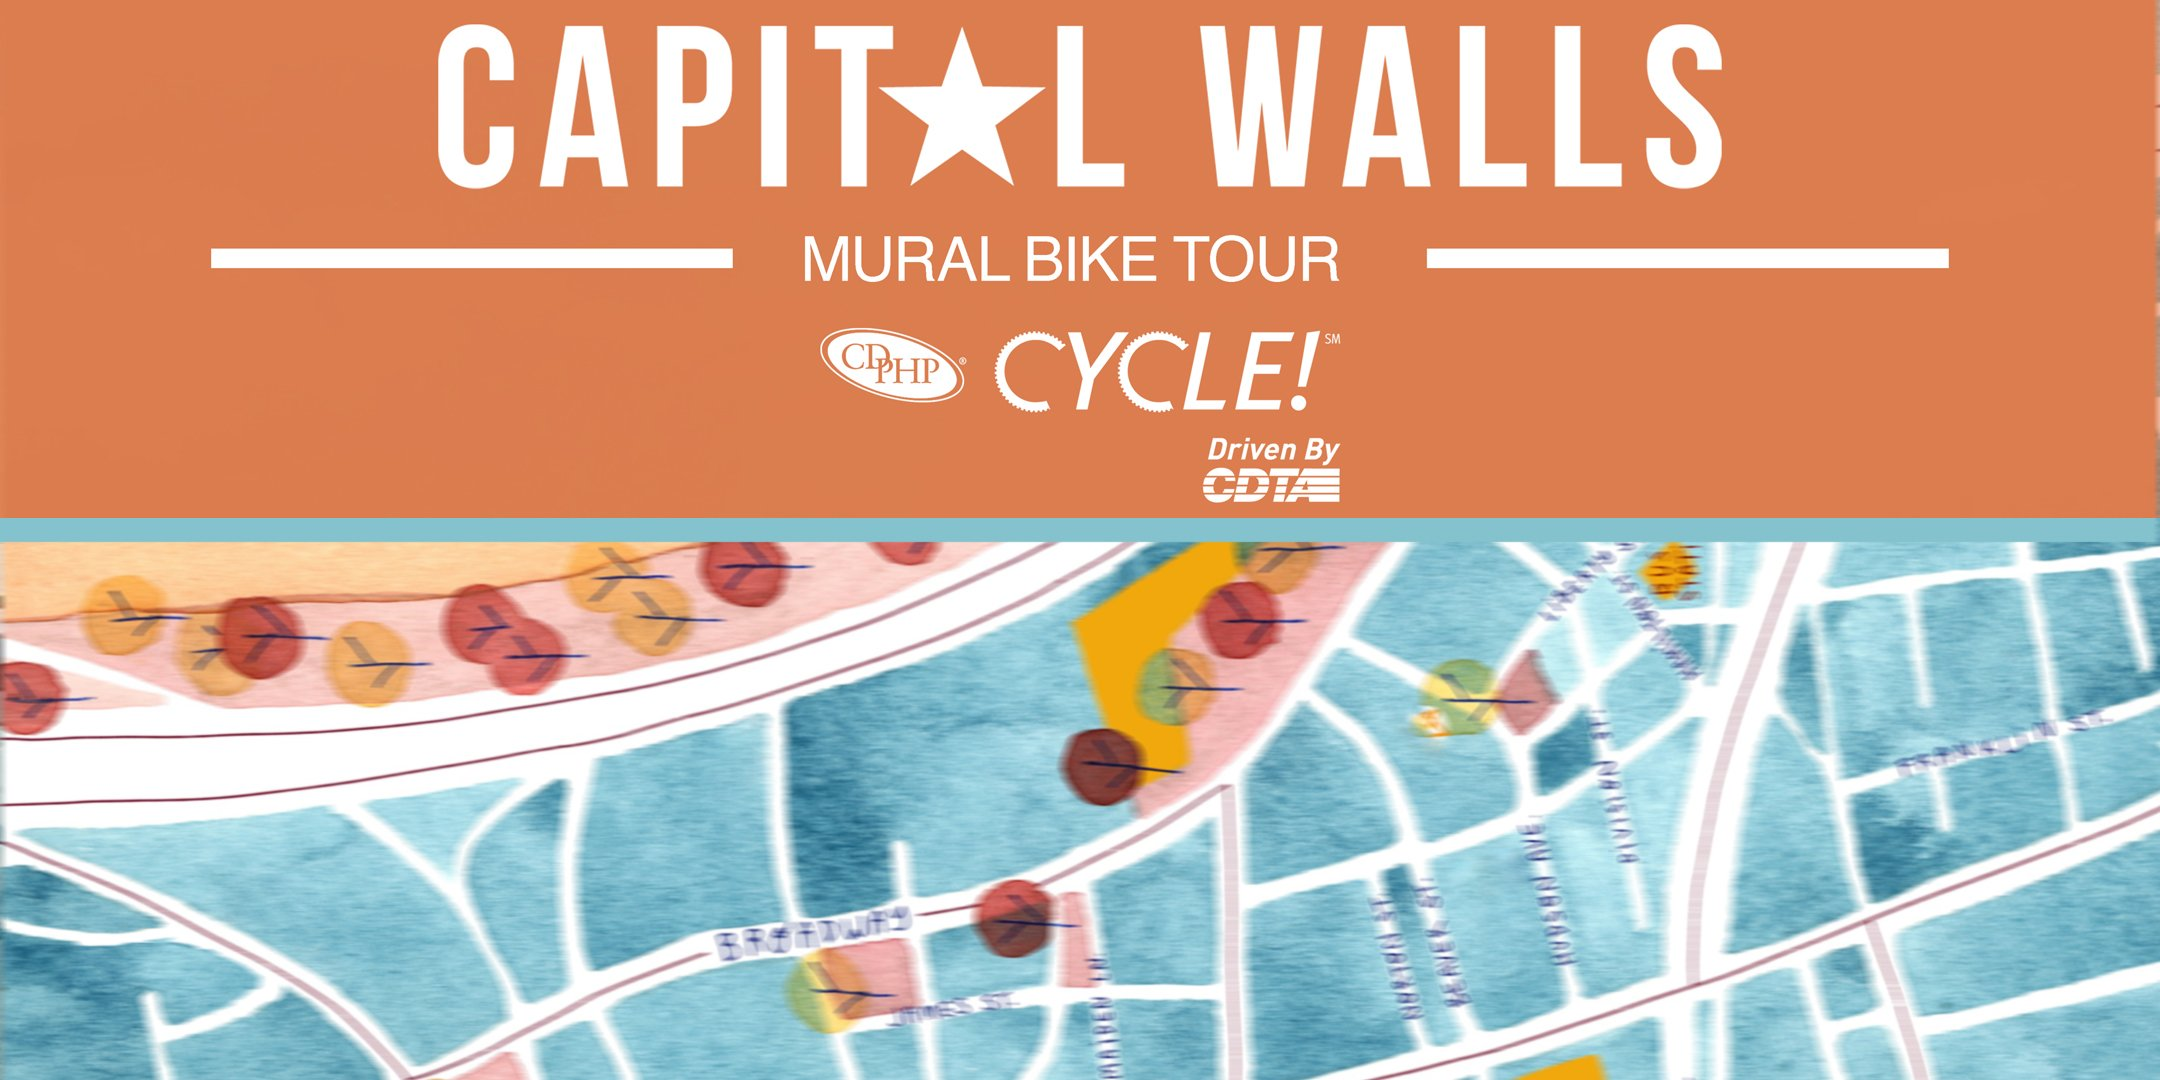 2nd Annual Capital Walls Mural Bike Tour